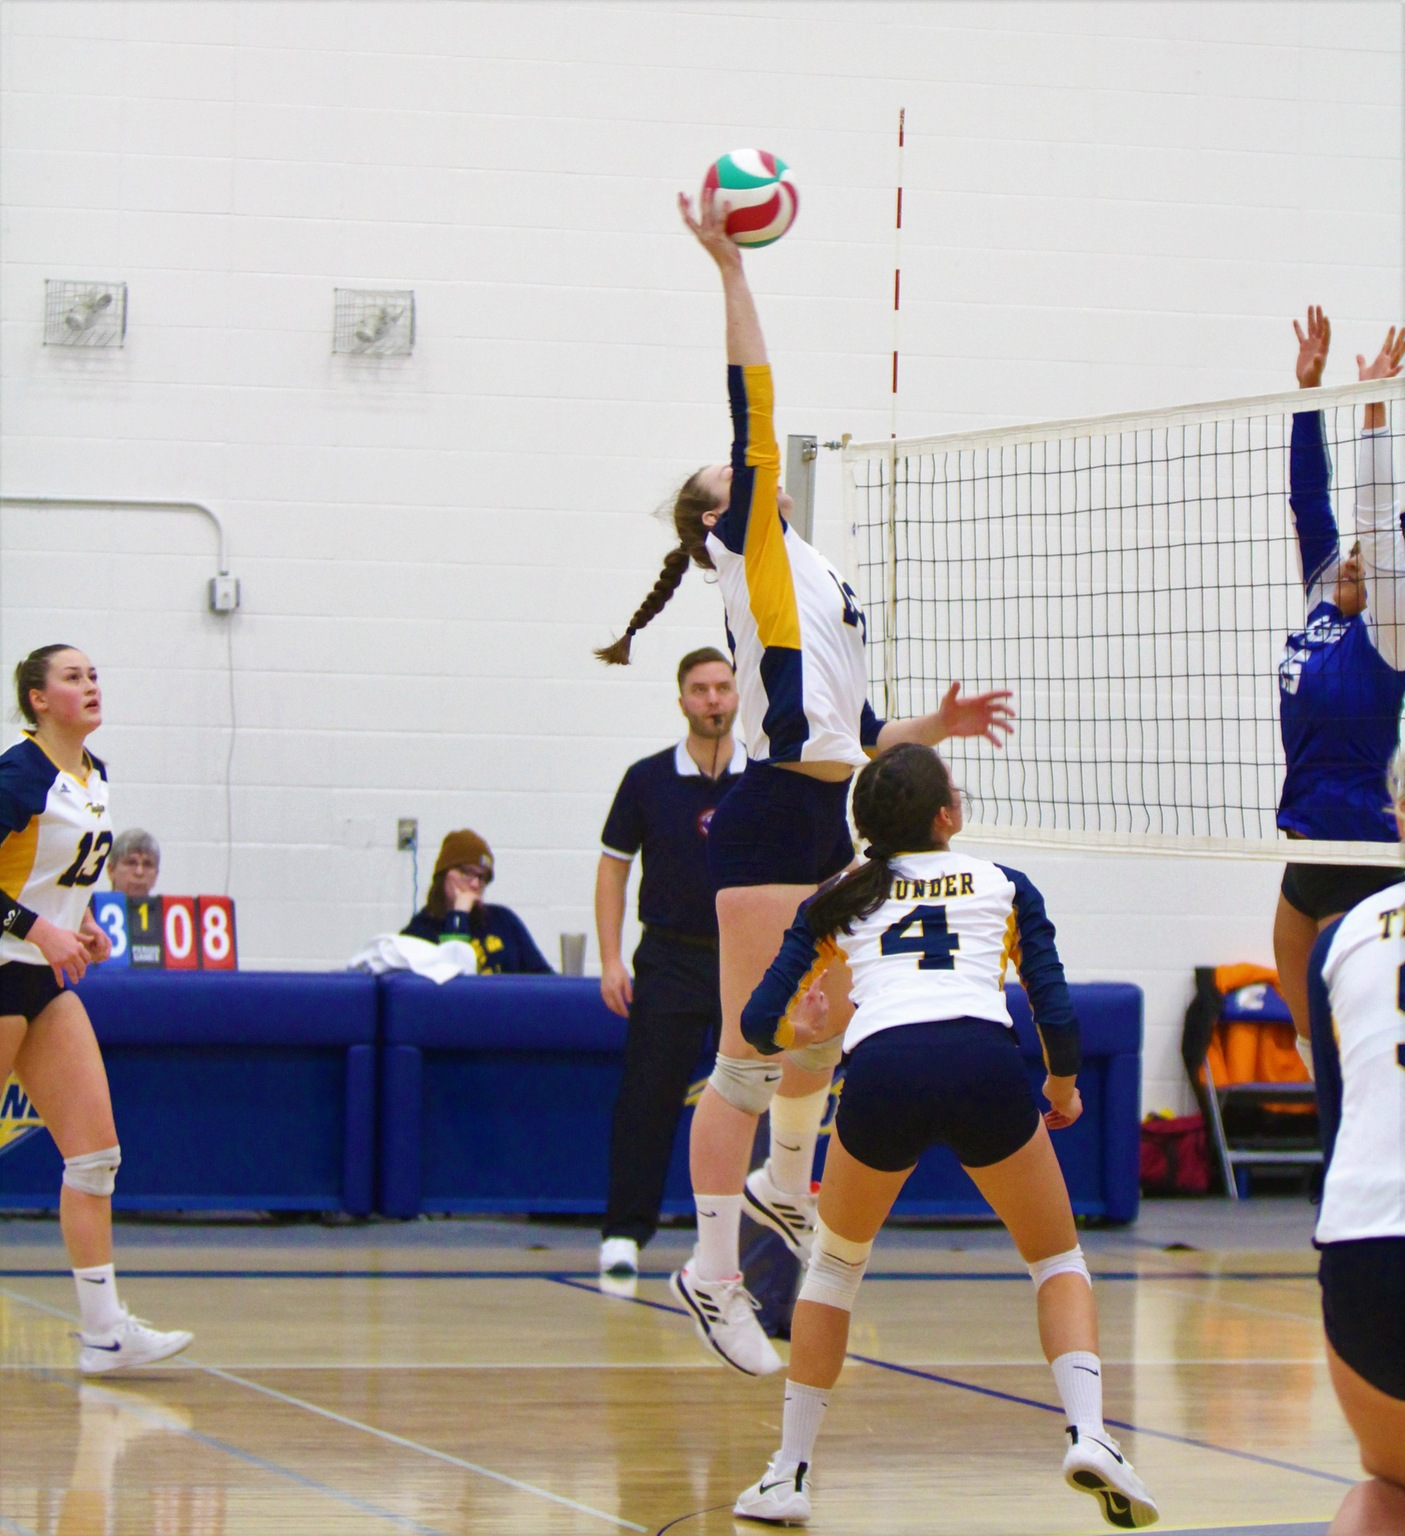 Thunder Fall In Three Sets To The Eagles